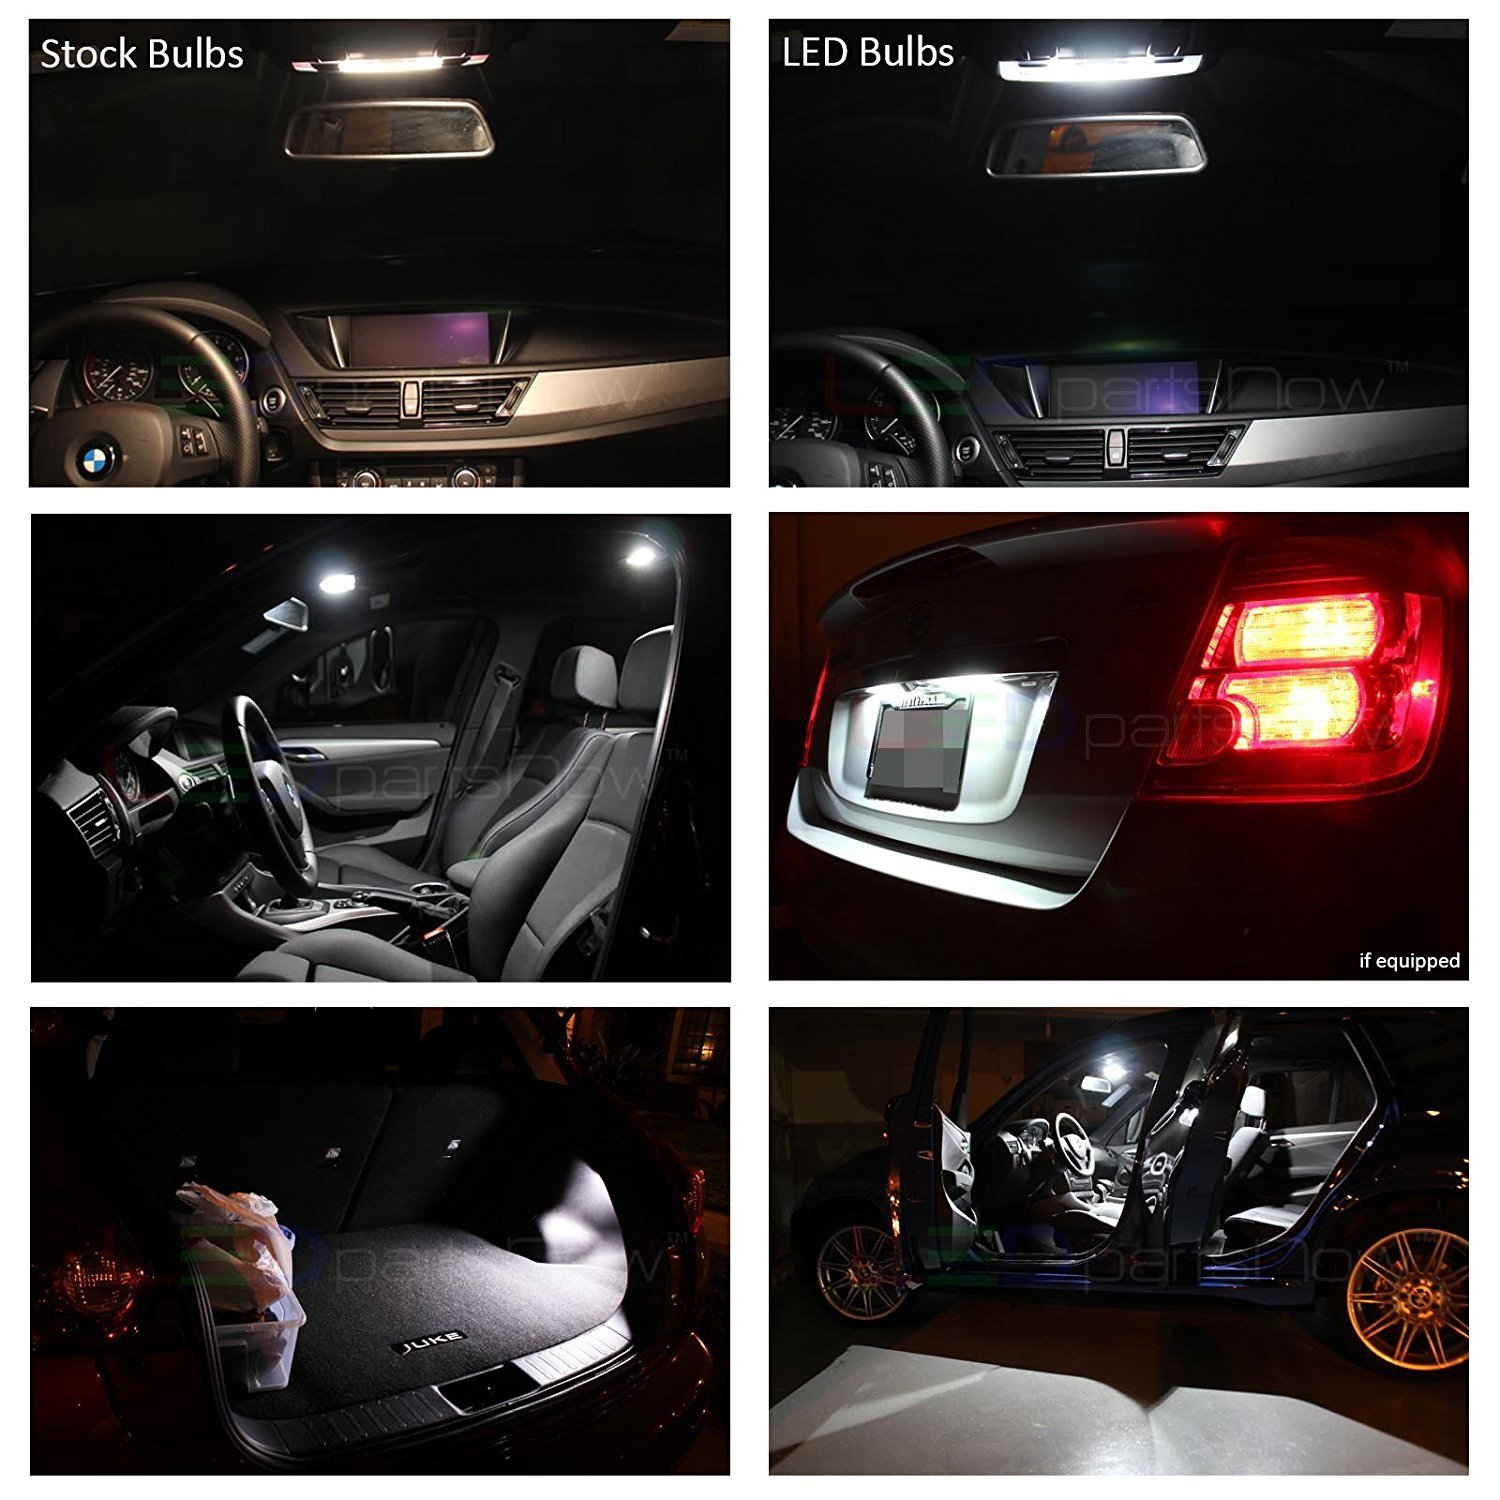 accents body glow kits headlight engine bar under interior led htm florescent accent light lighting underbody